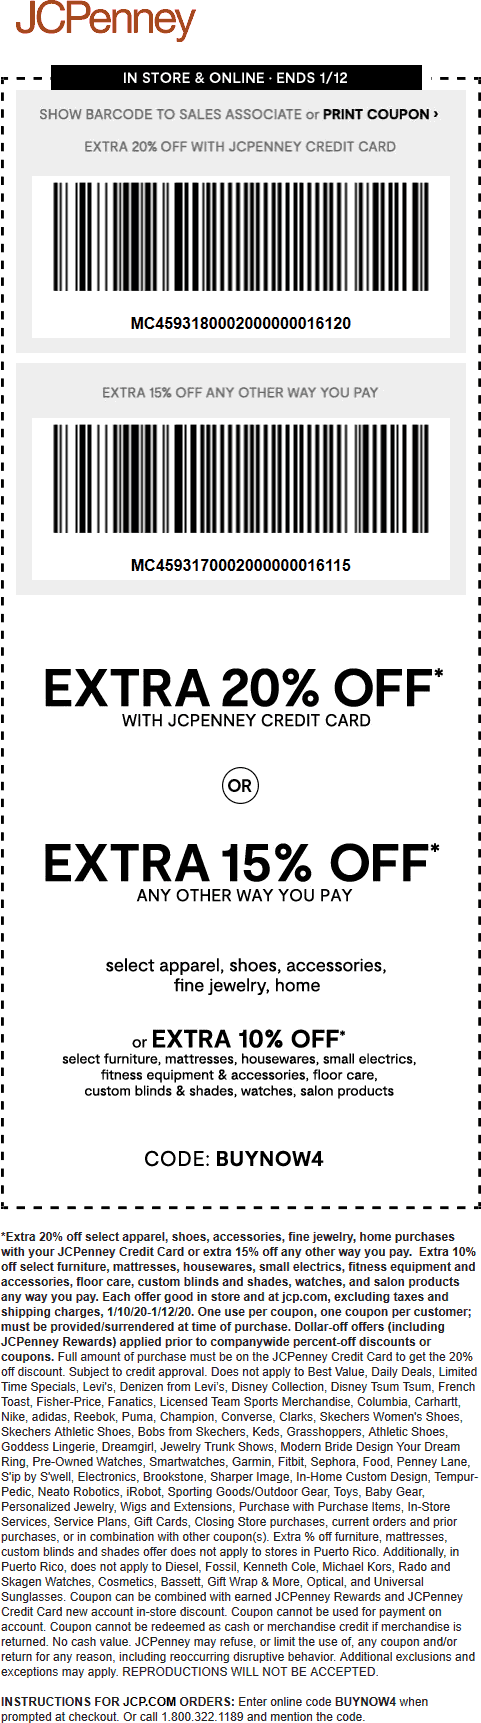 JCPenney Coupon January 2020 15% off at JCPenney, or online via promo code BUYNOW4